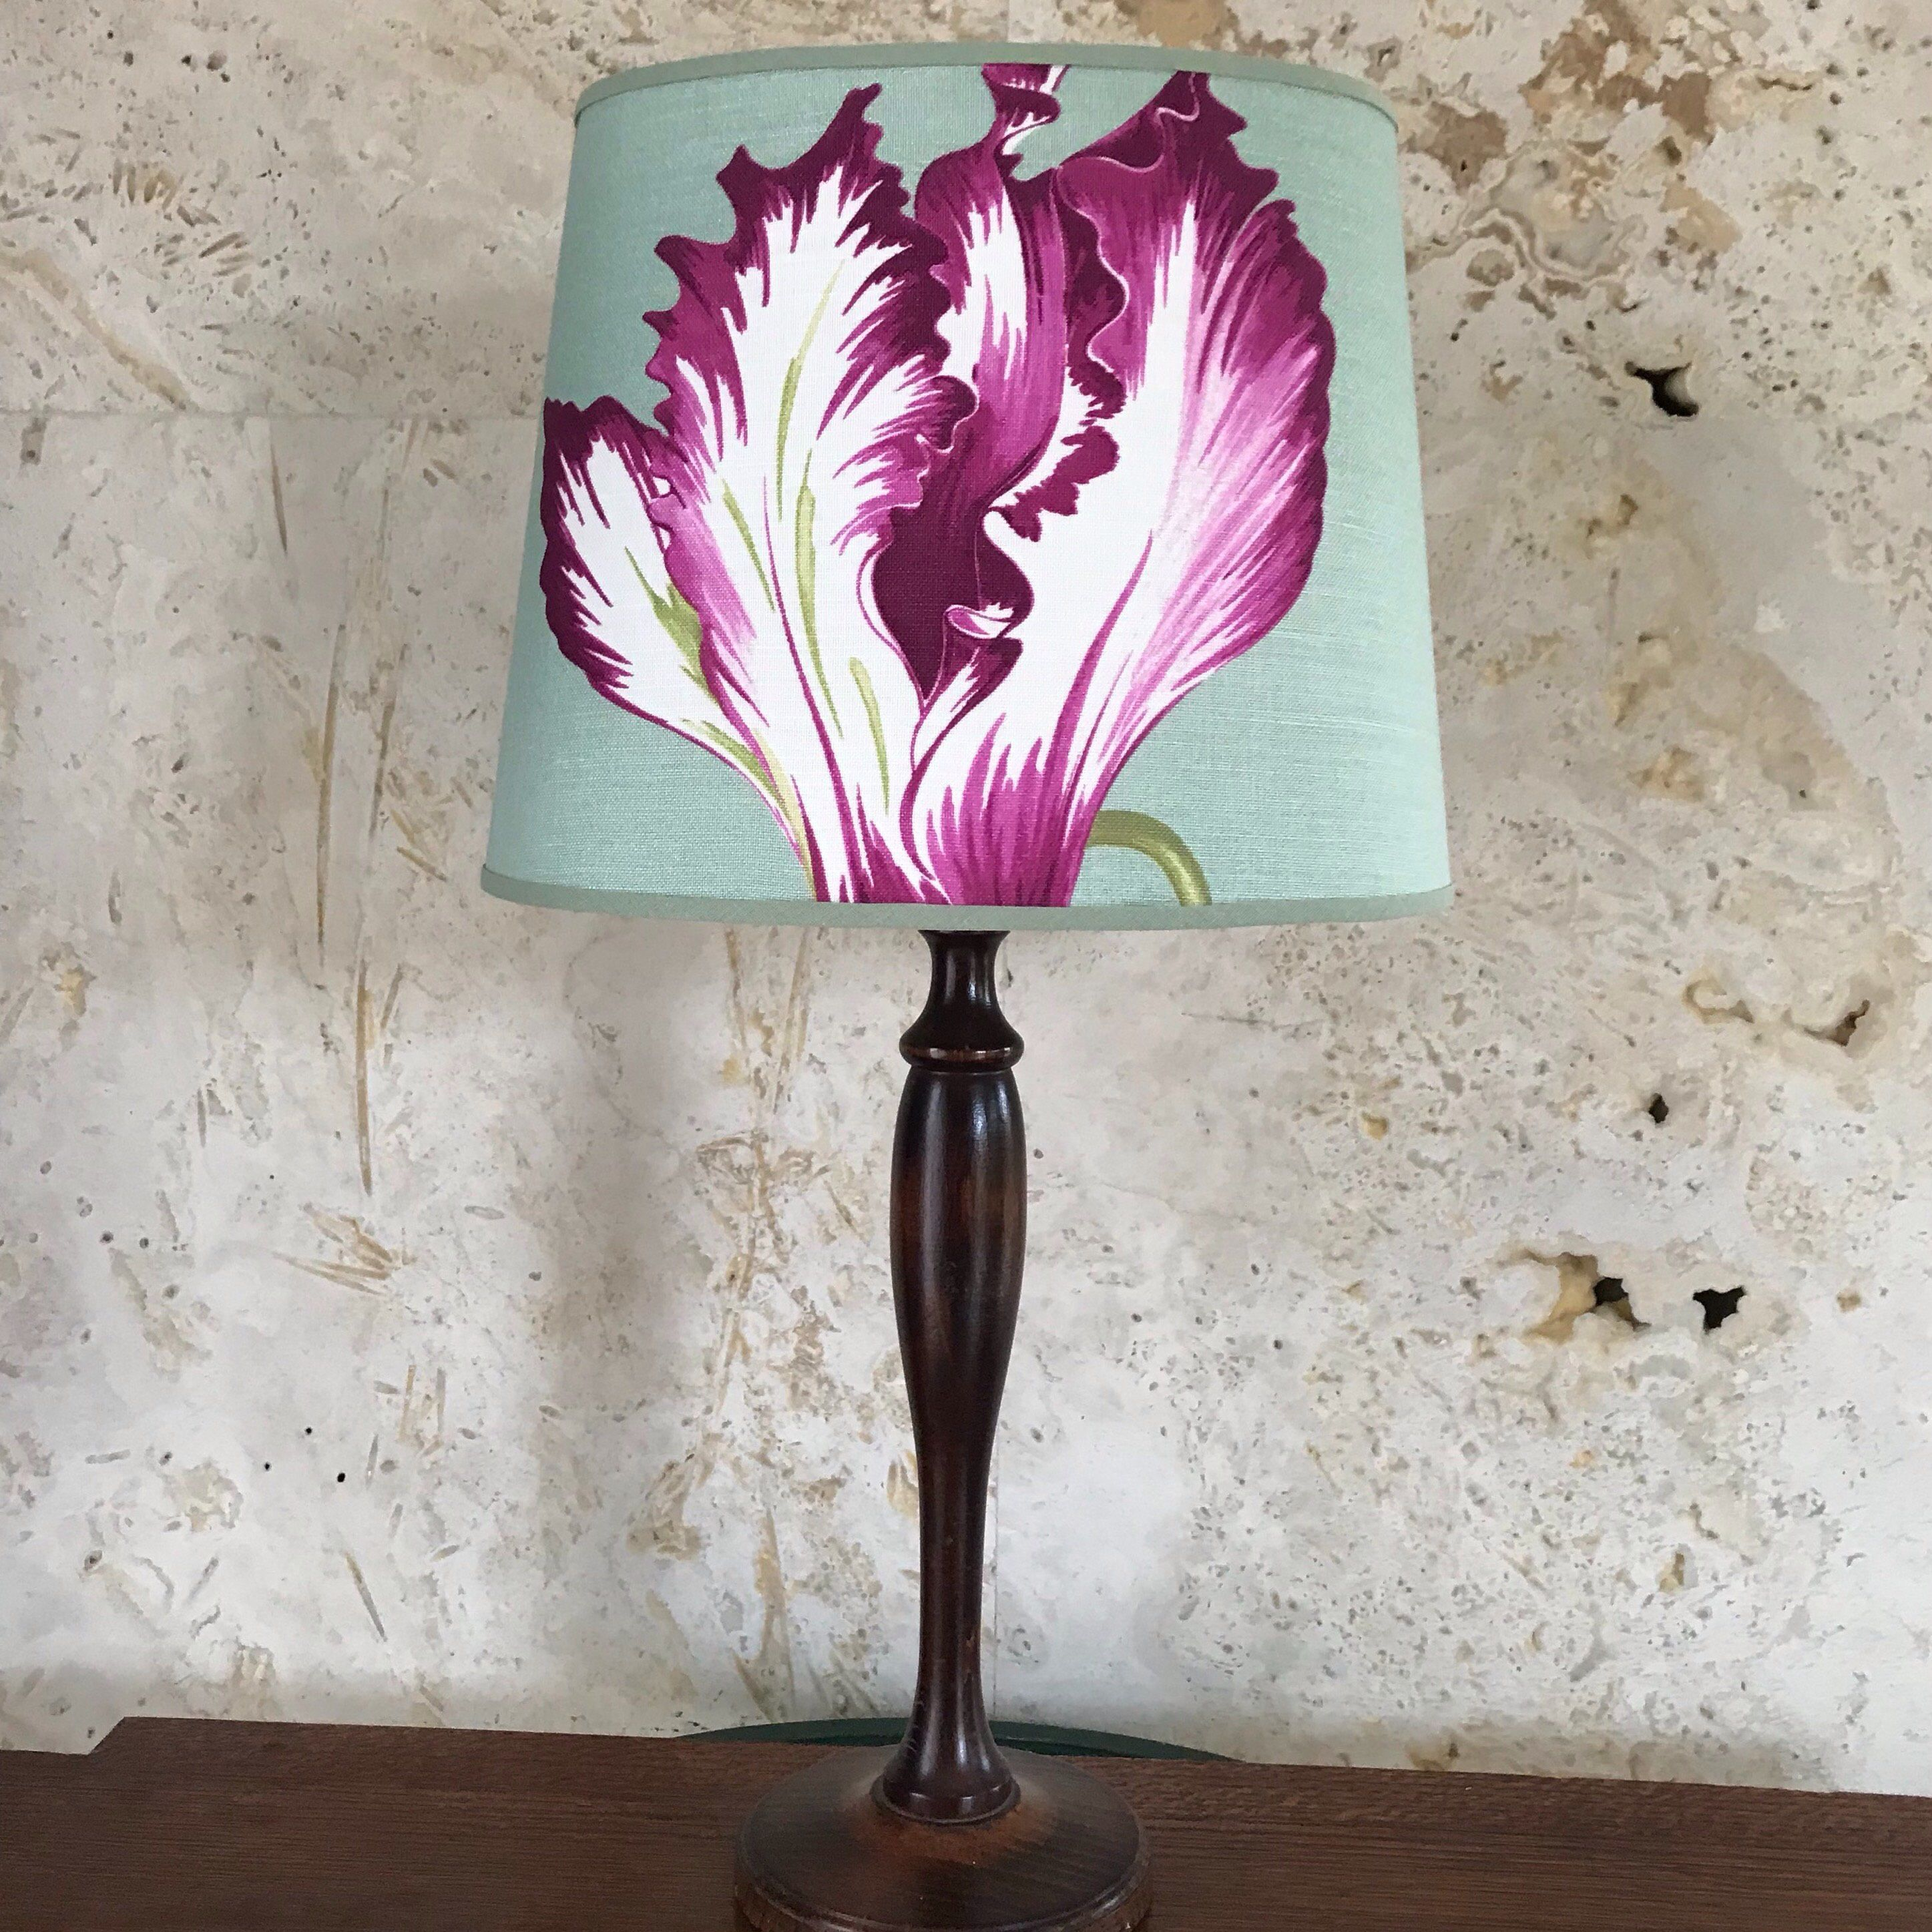 Manuel Canovas Ines Medium Handmade Oval Lampshade Table Lamp By Lampshadeliving On Etsy